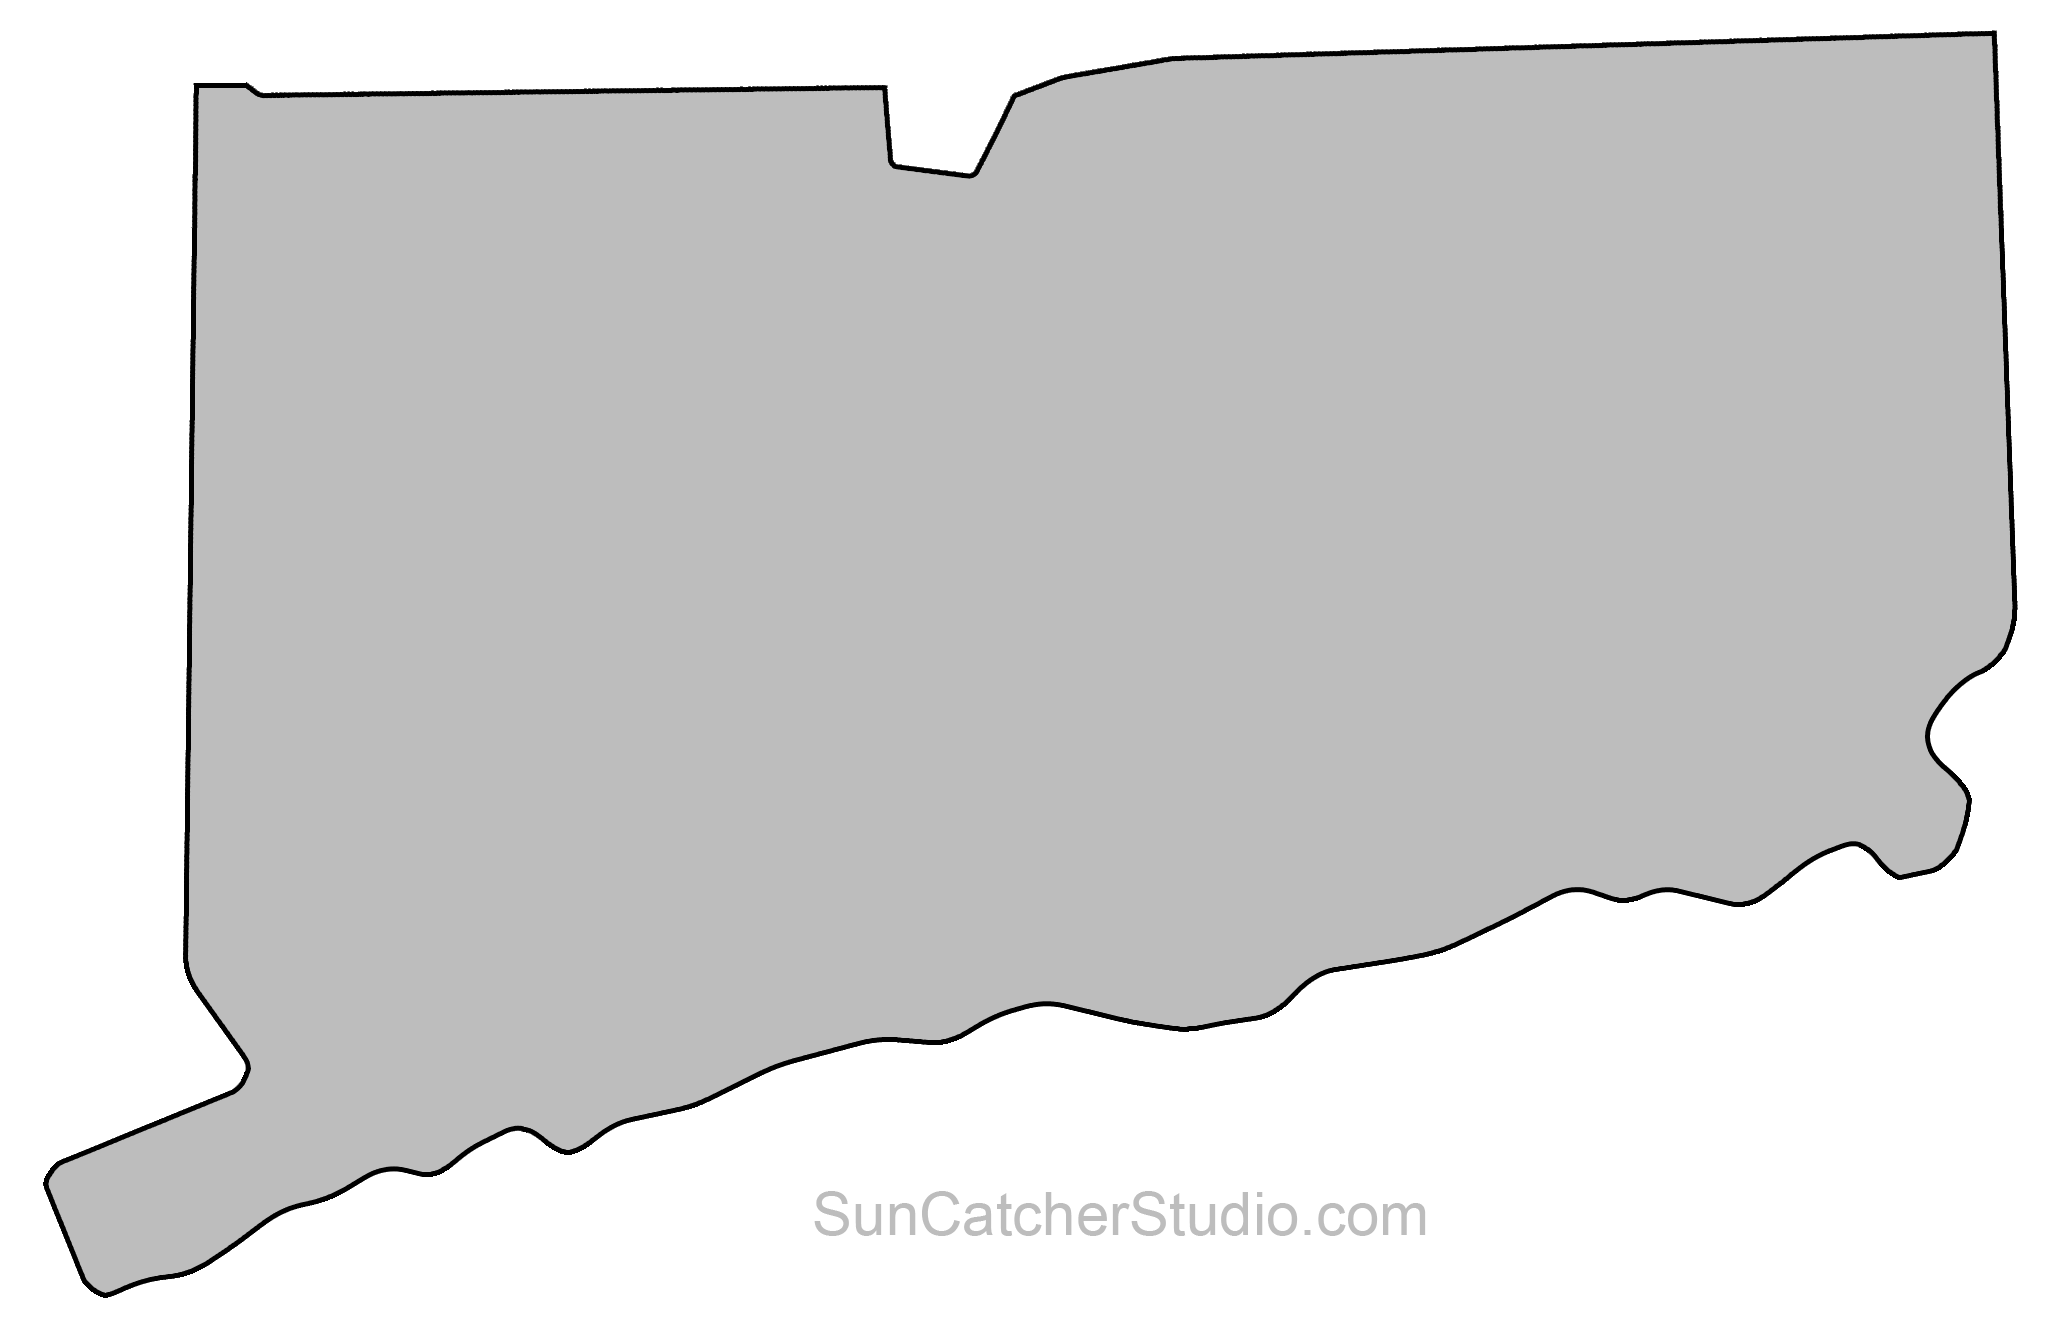 Connecticut - Map Outline, Printable State, Shape, Stencil ... on color map of connecticut, show map of connecticut, map showing cities in connecticut, political map of connecticut, us state map of connecticut, topographical map of connecticut, high resolution outline of connecticut, blank map massachusetts, outline map of connecticut, detailed map connecticut, blank global map, physical map of connecticut, geological map of connecticut, blank map ohio, blank map new jersey, blank map california, relief map of connecticut, atlas map of connecticut, clear map of connecticut, blank map maine,